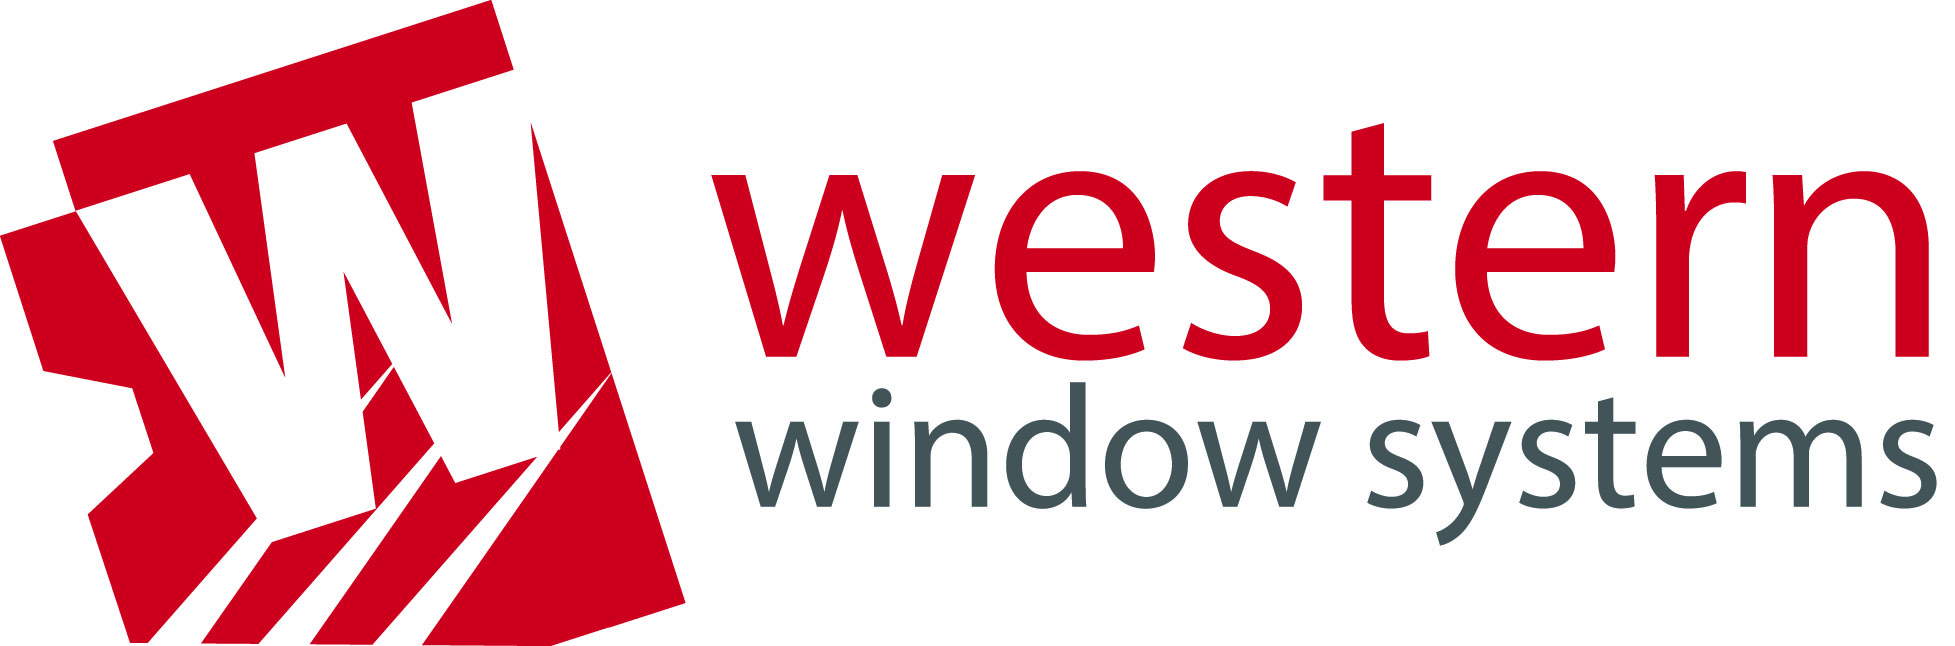 Tour of Homes - Western Window Systems logo